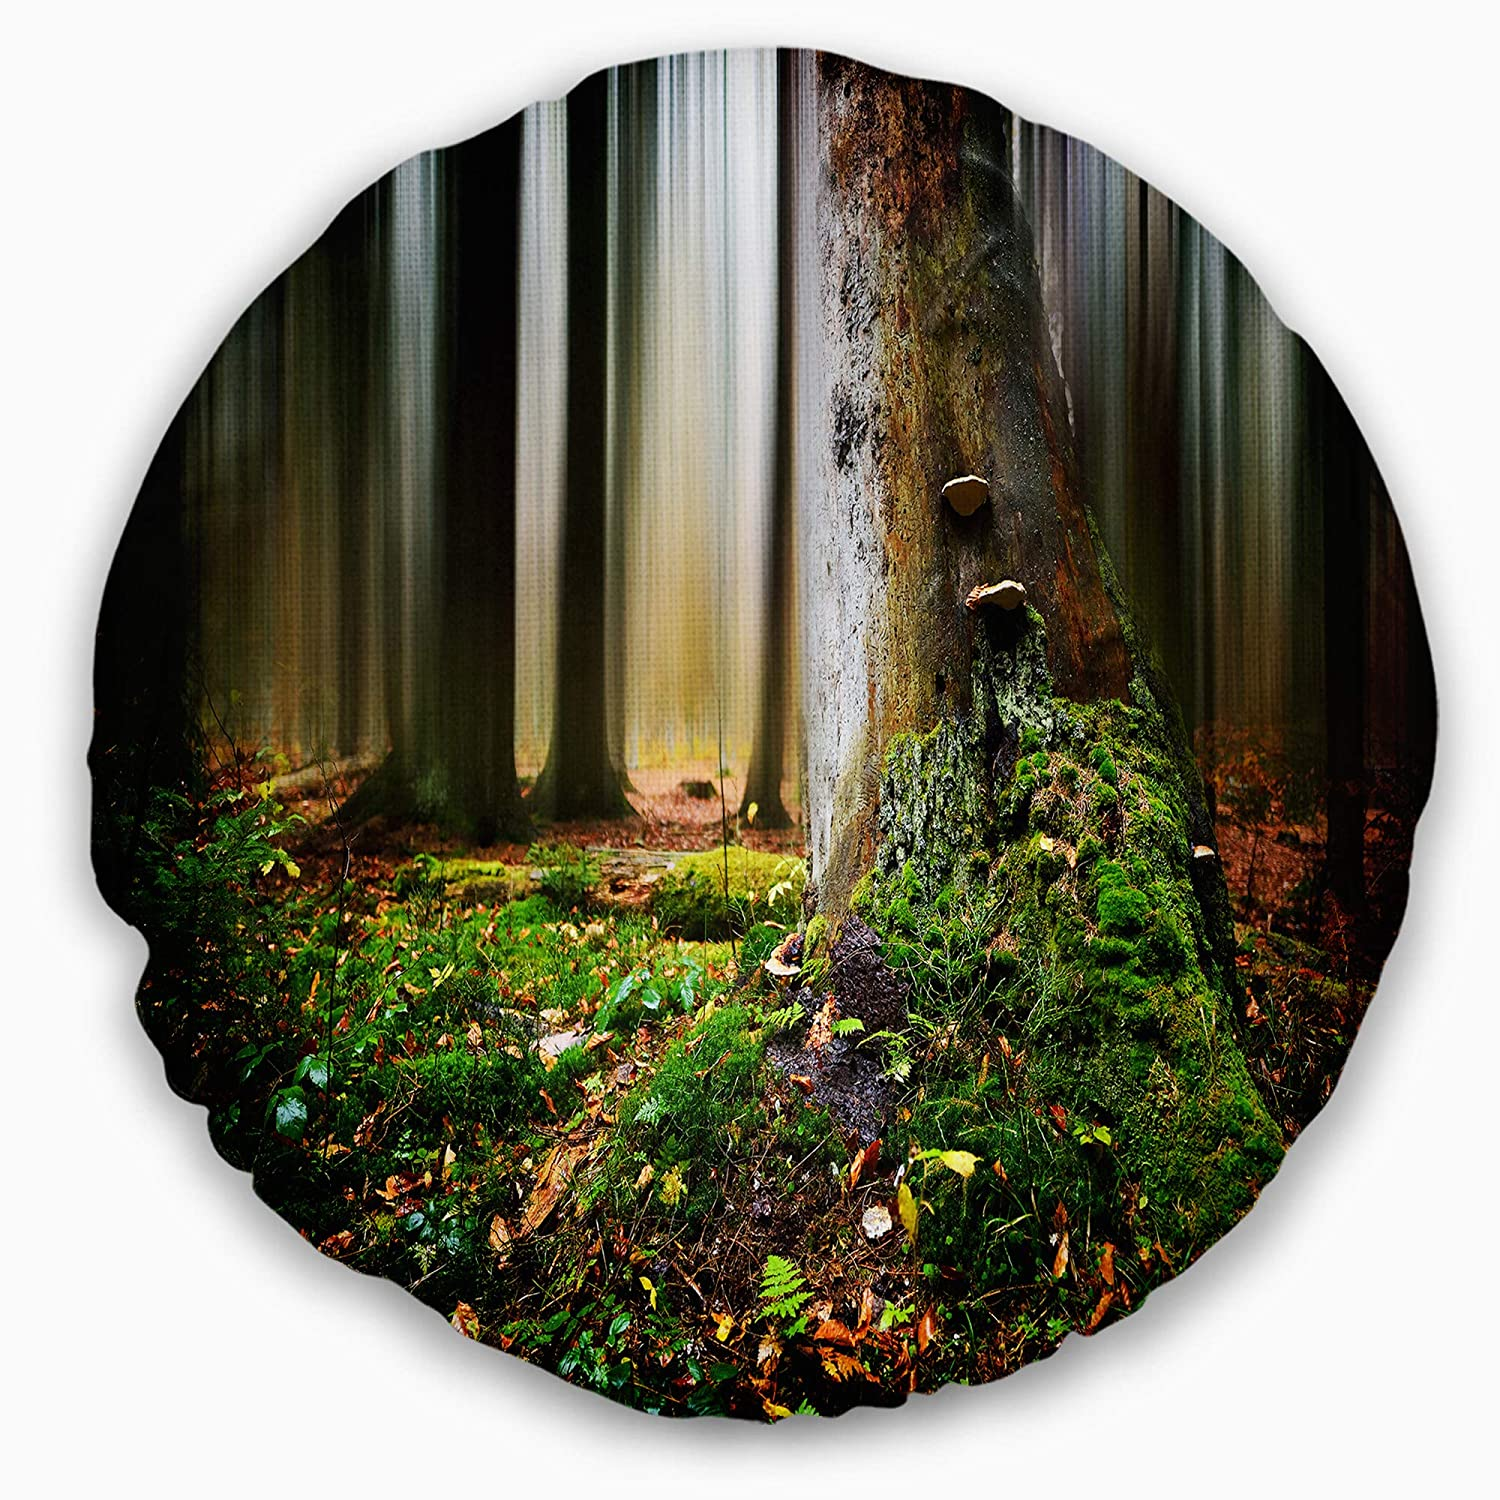 Sofa Throw Pillow 20 Insert Side Designart CU15432-20-20-C Green Forest on Snowy Morning Landscape Printed Round Cushion Cover for Living Room